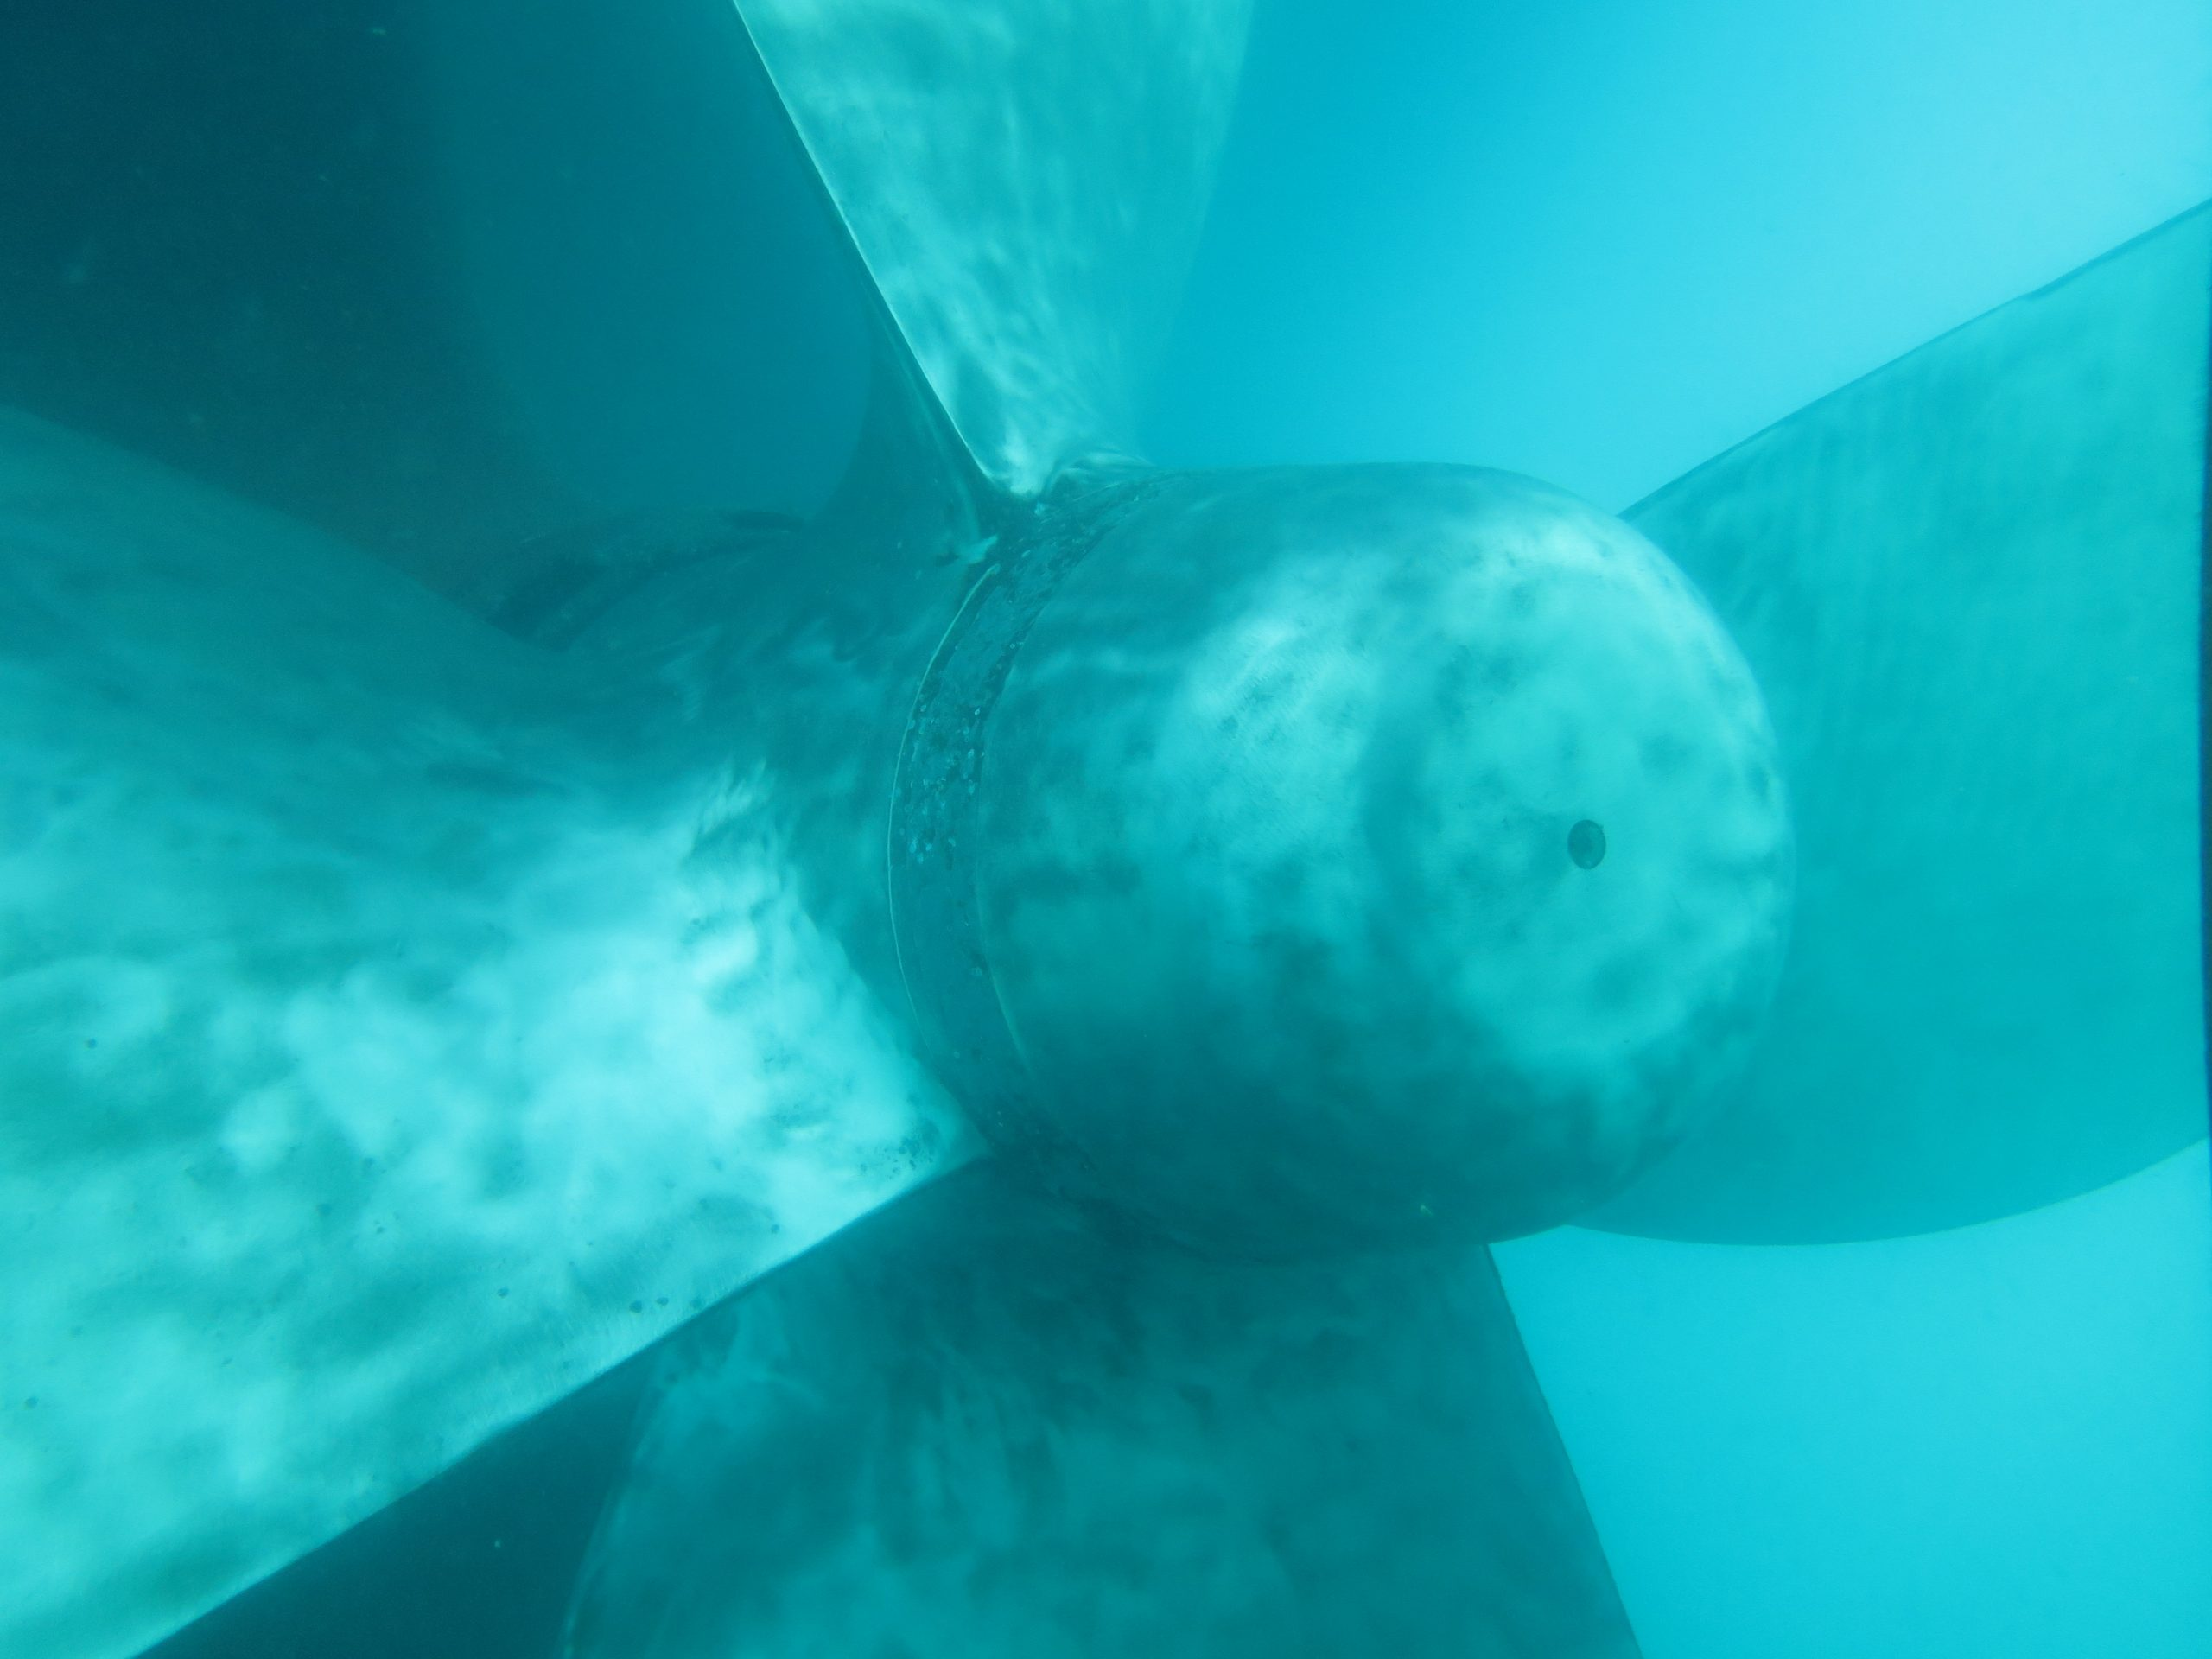 Polished propeller during underwater hull cleaning